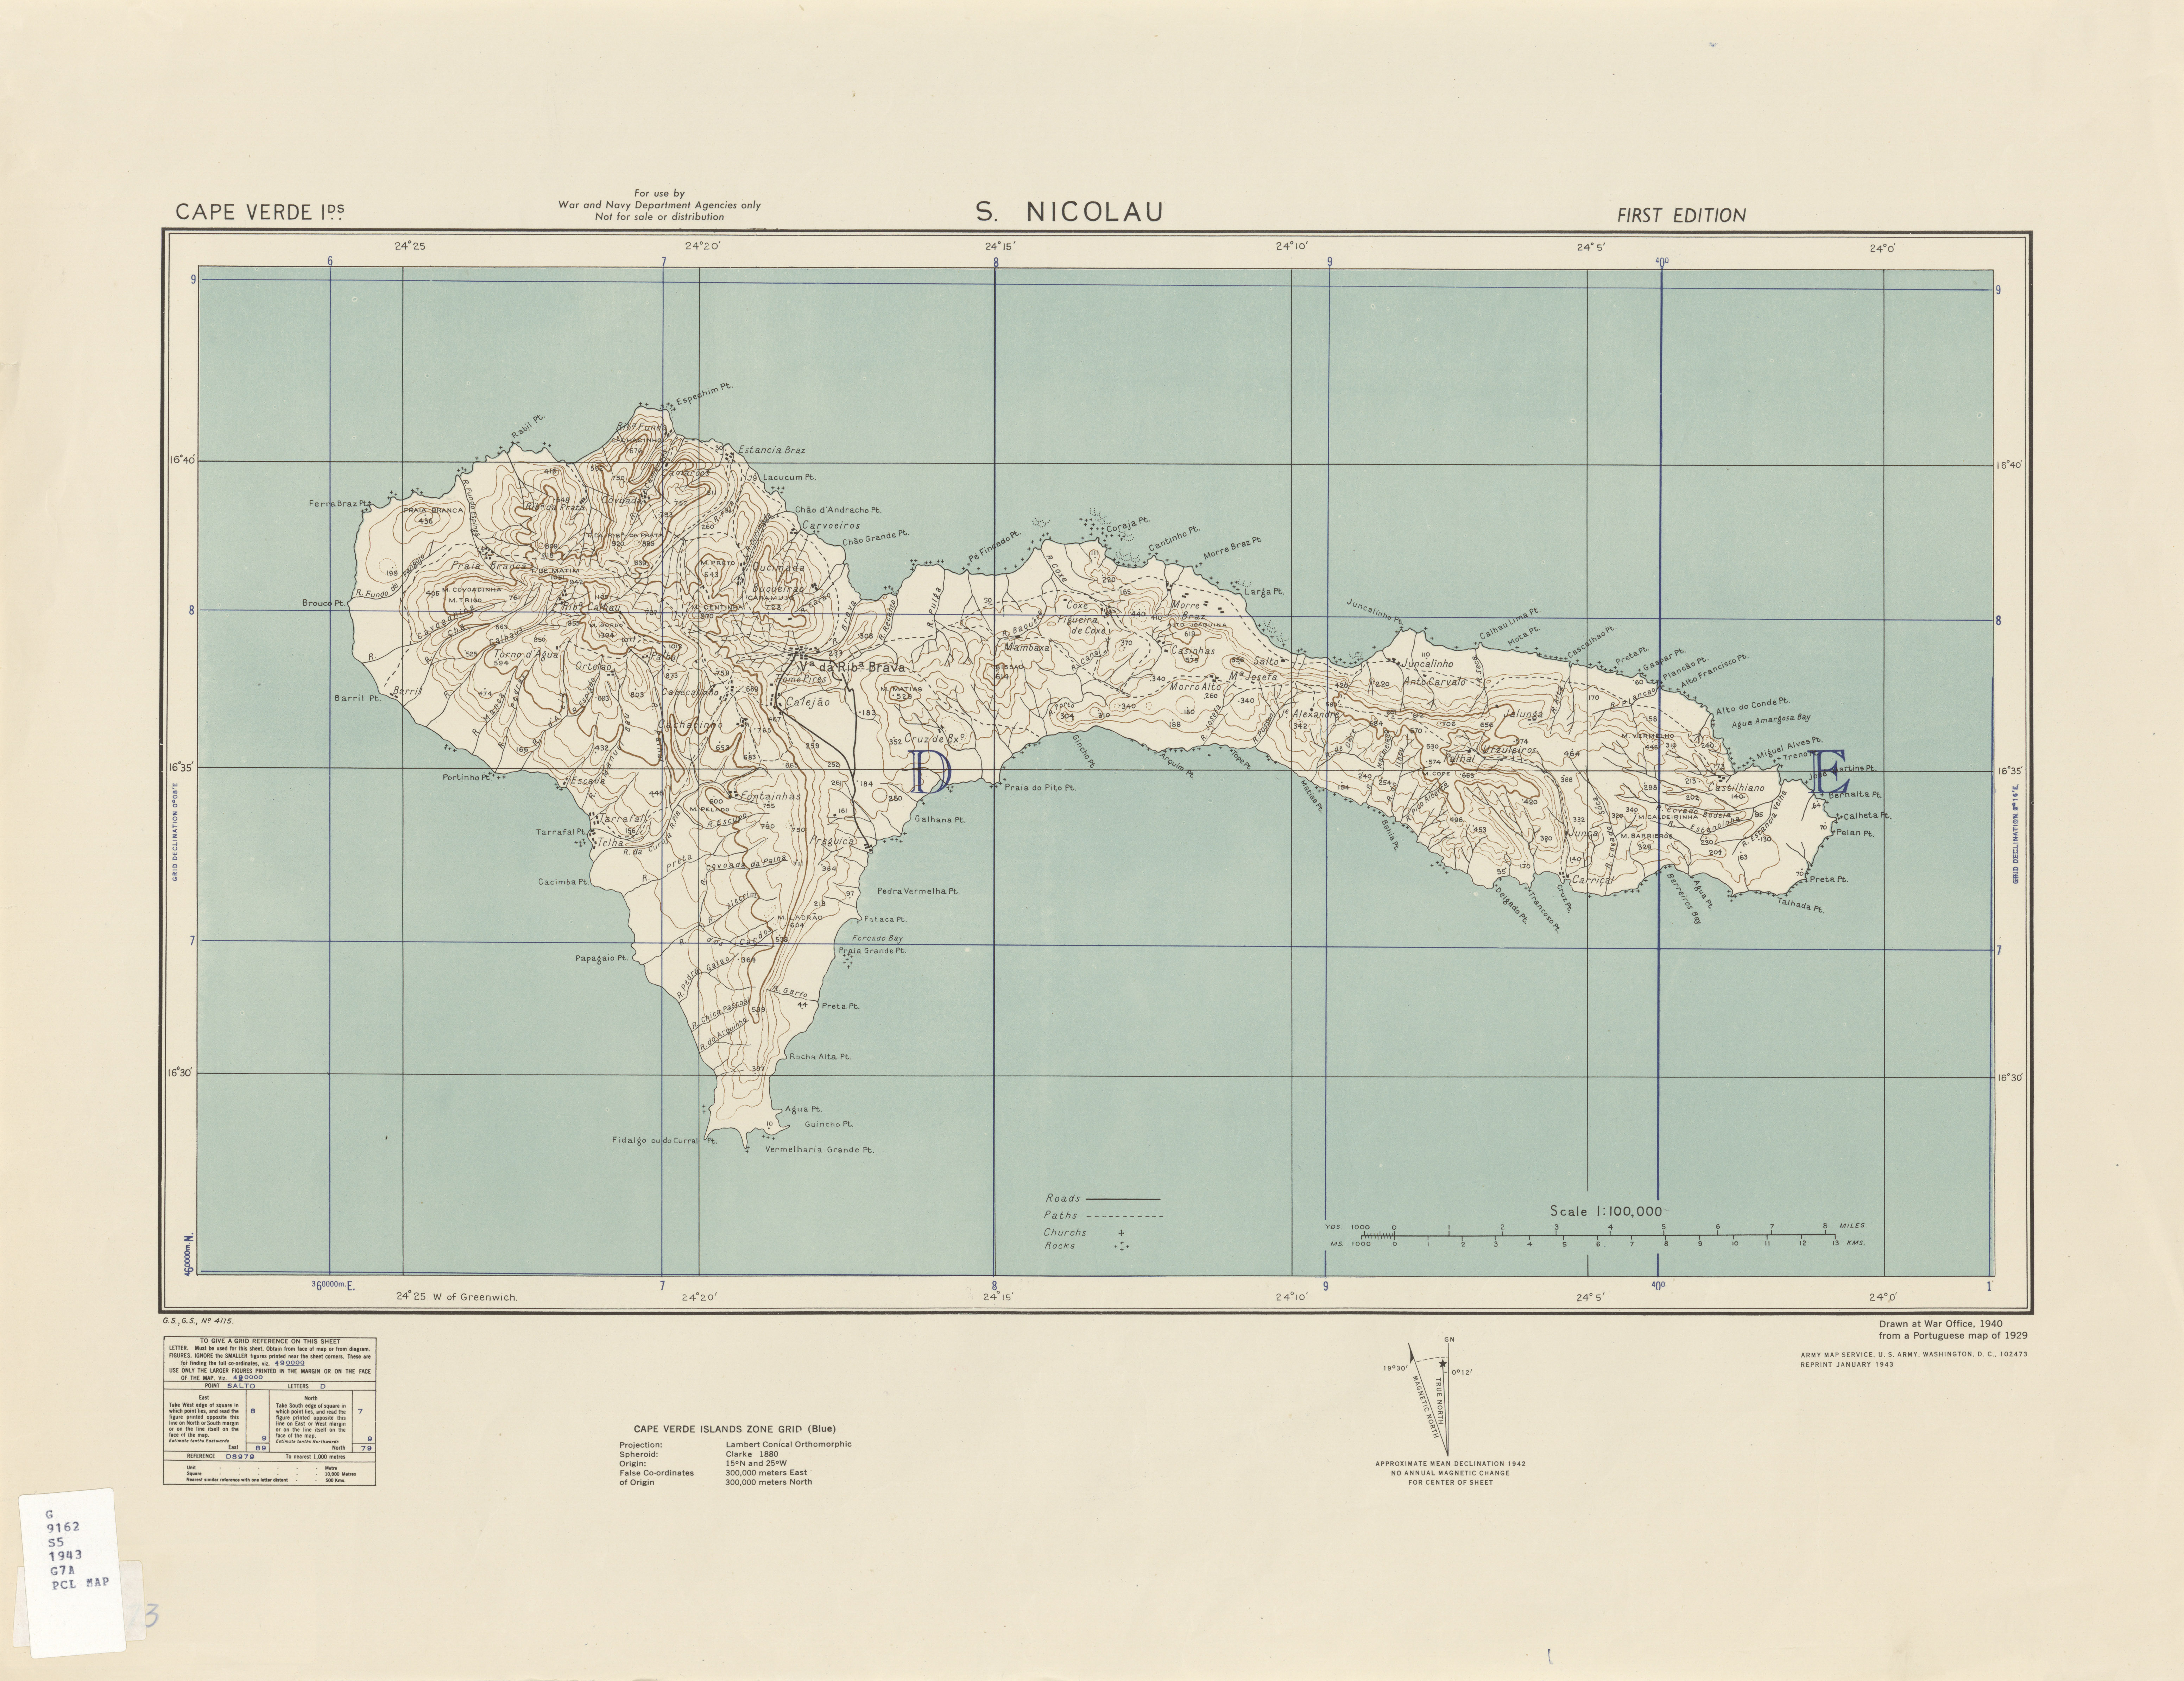 Army Map Service PerryCastañeda Map Collection UT Library Online - 1 50000 topo map us military